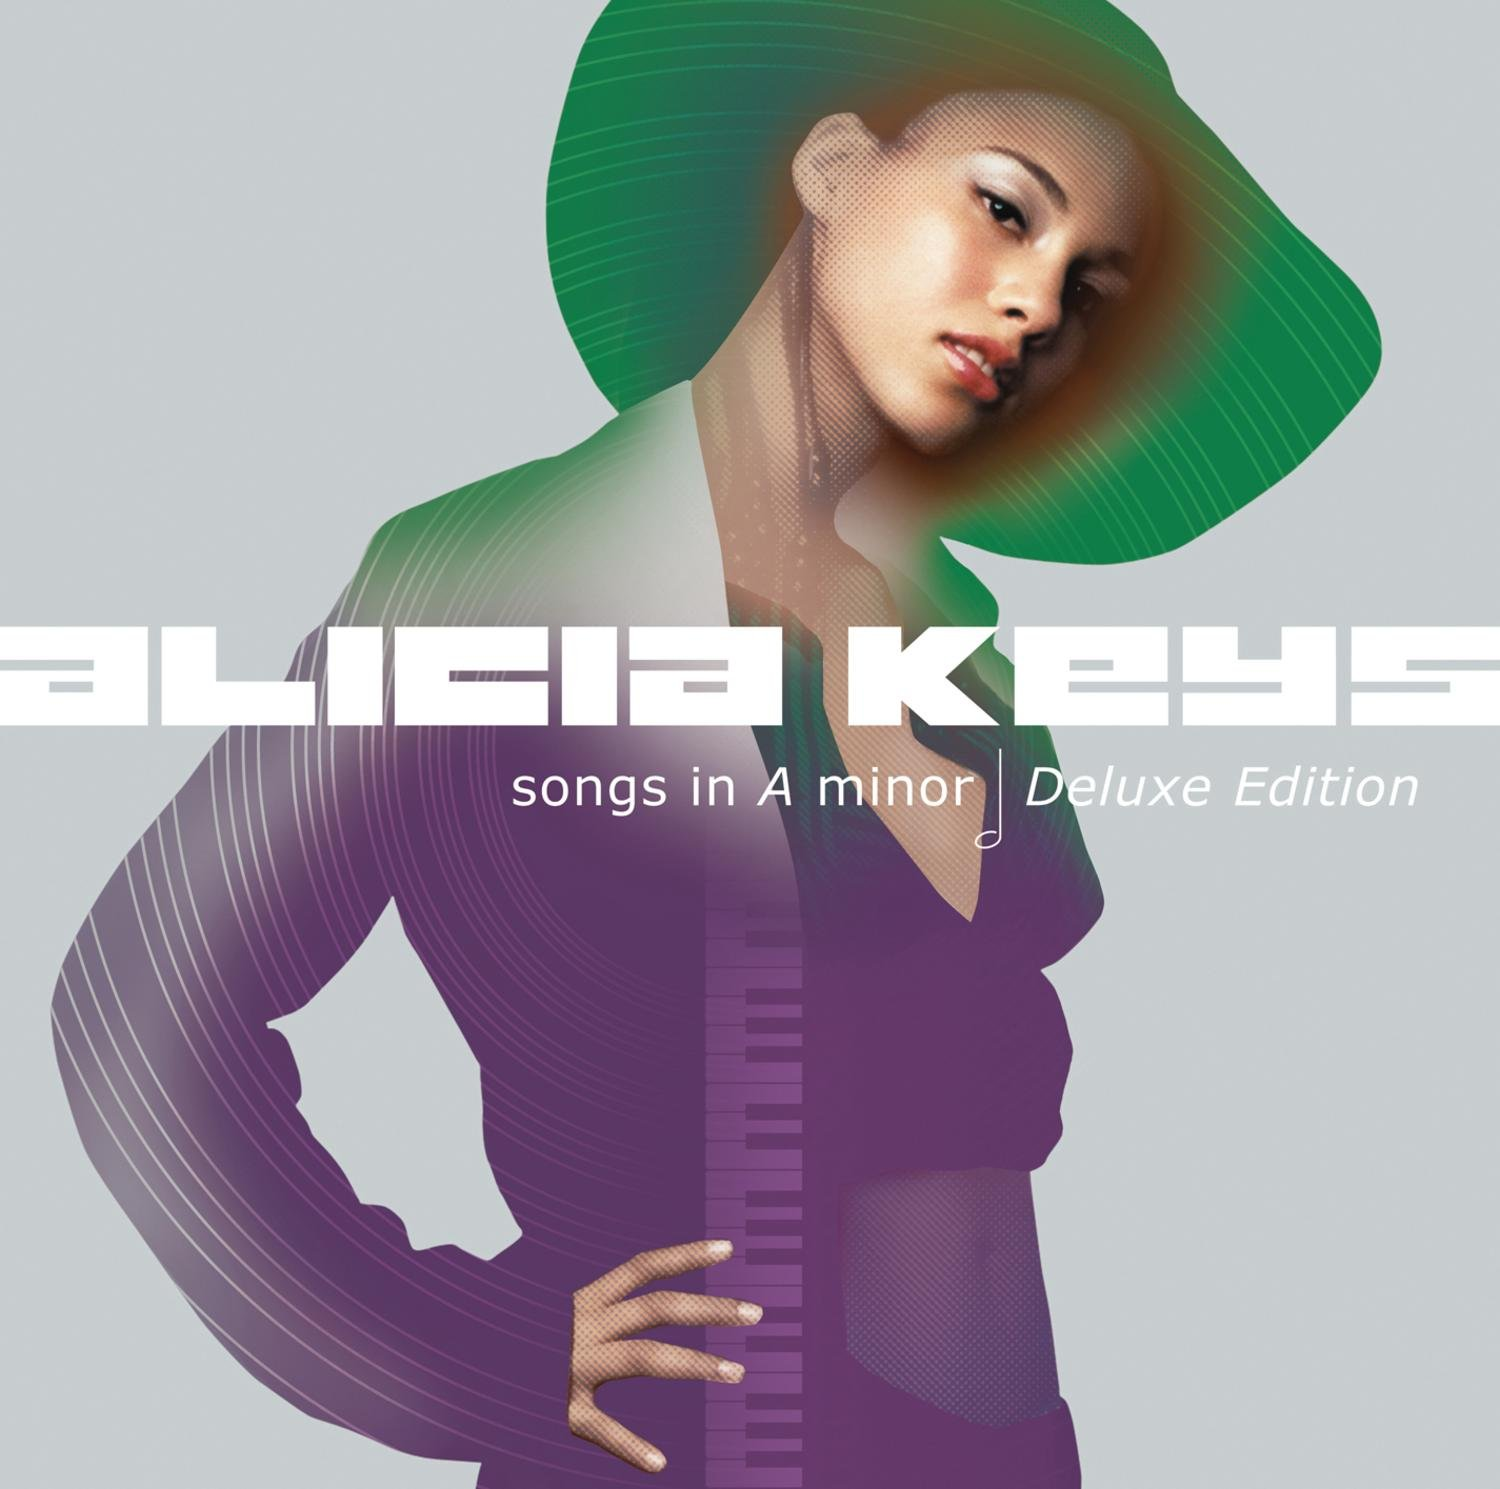 Alicia keys songs in a minor 10th anniversary edition torrent